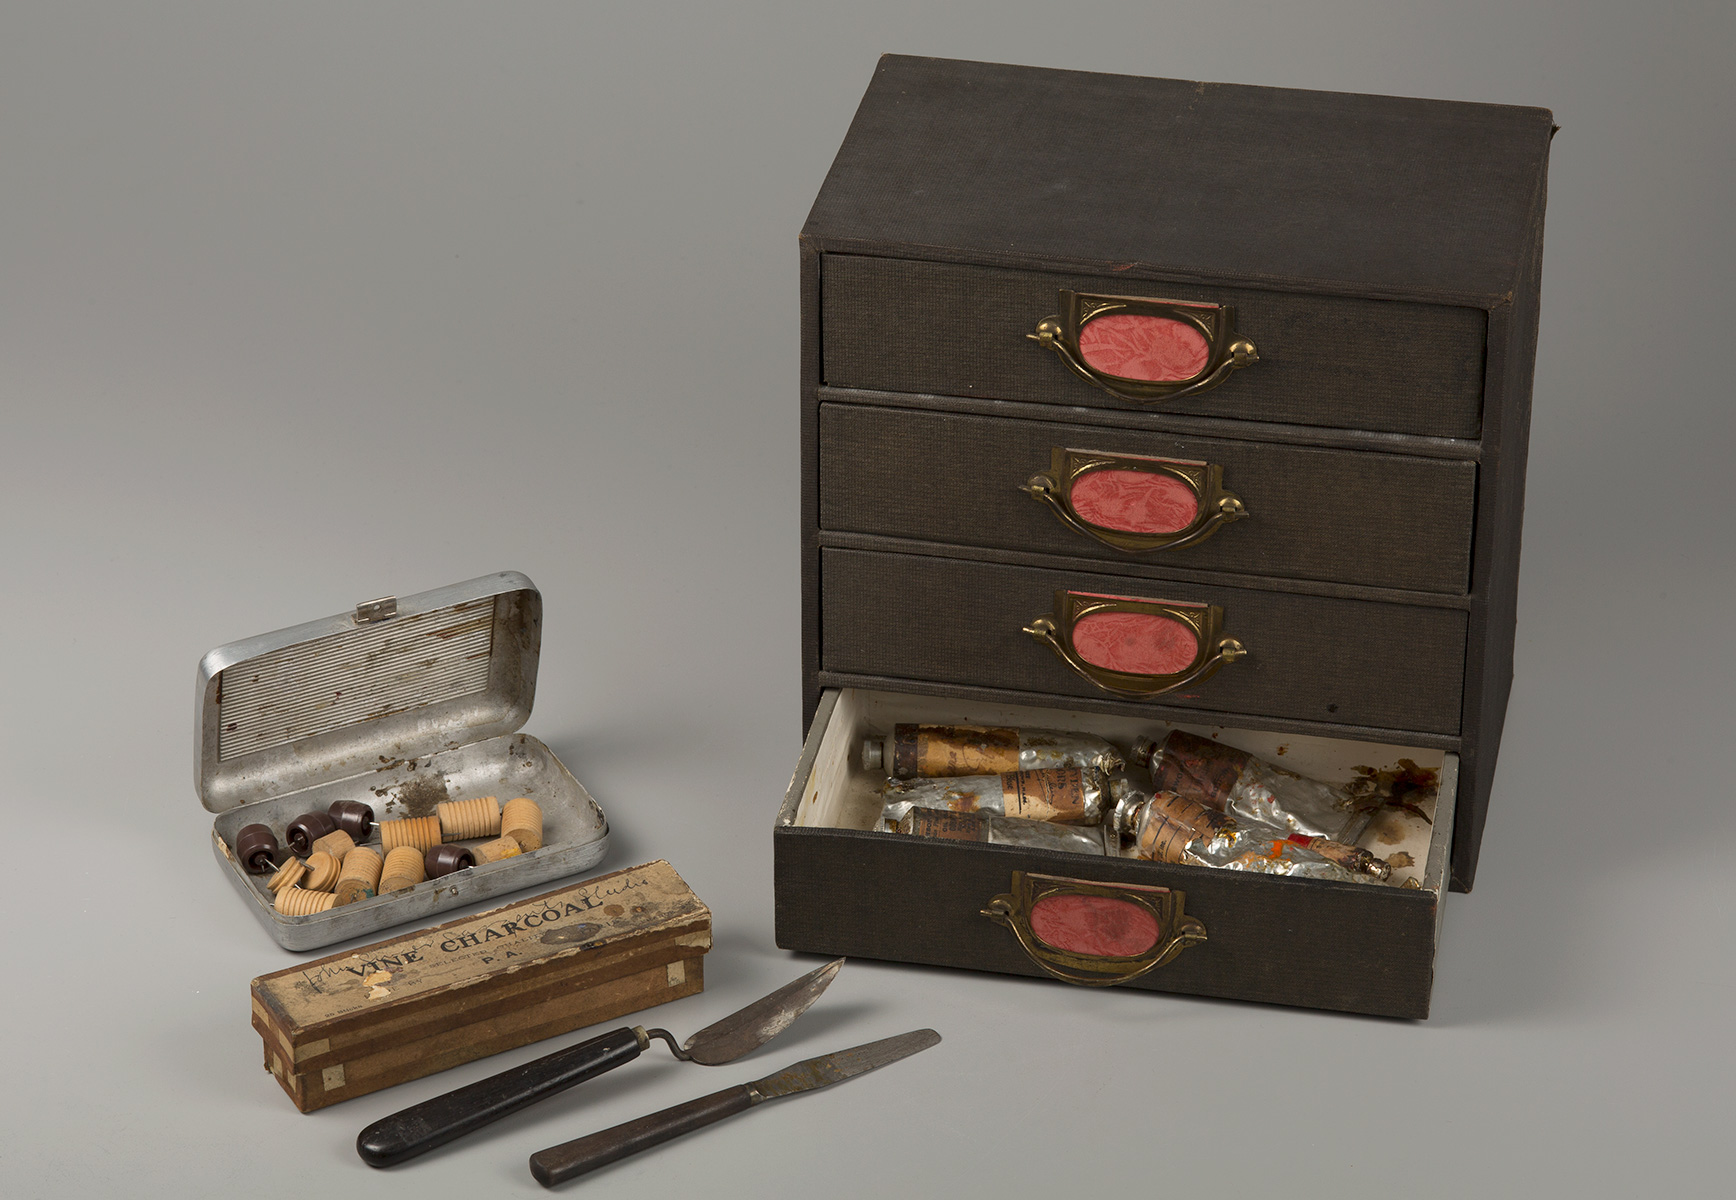 One of Sargent's paint boxes—still containing supplies—is also part of the museums' collections.